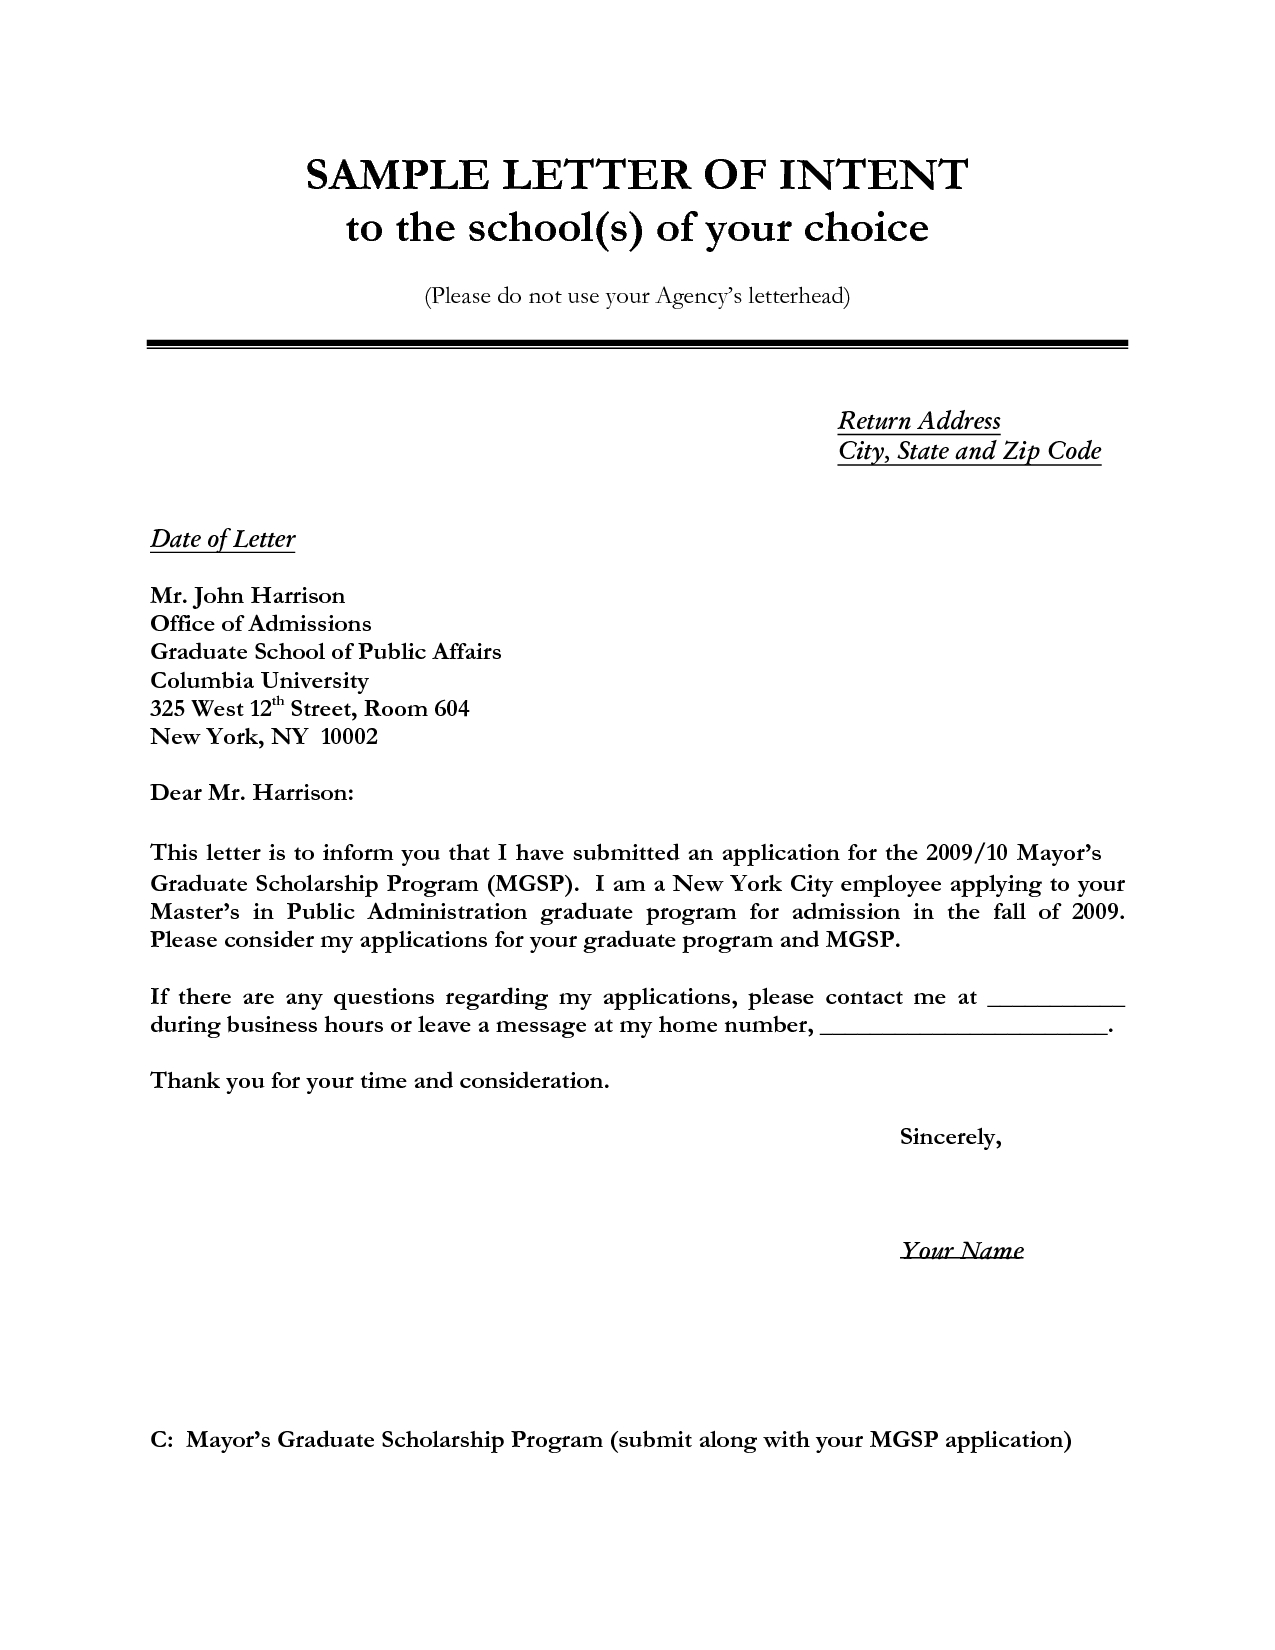 Letter Of Intent Template Microsoft Word - Letter Of Intent Sample